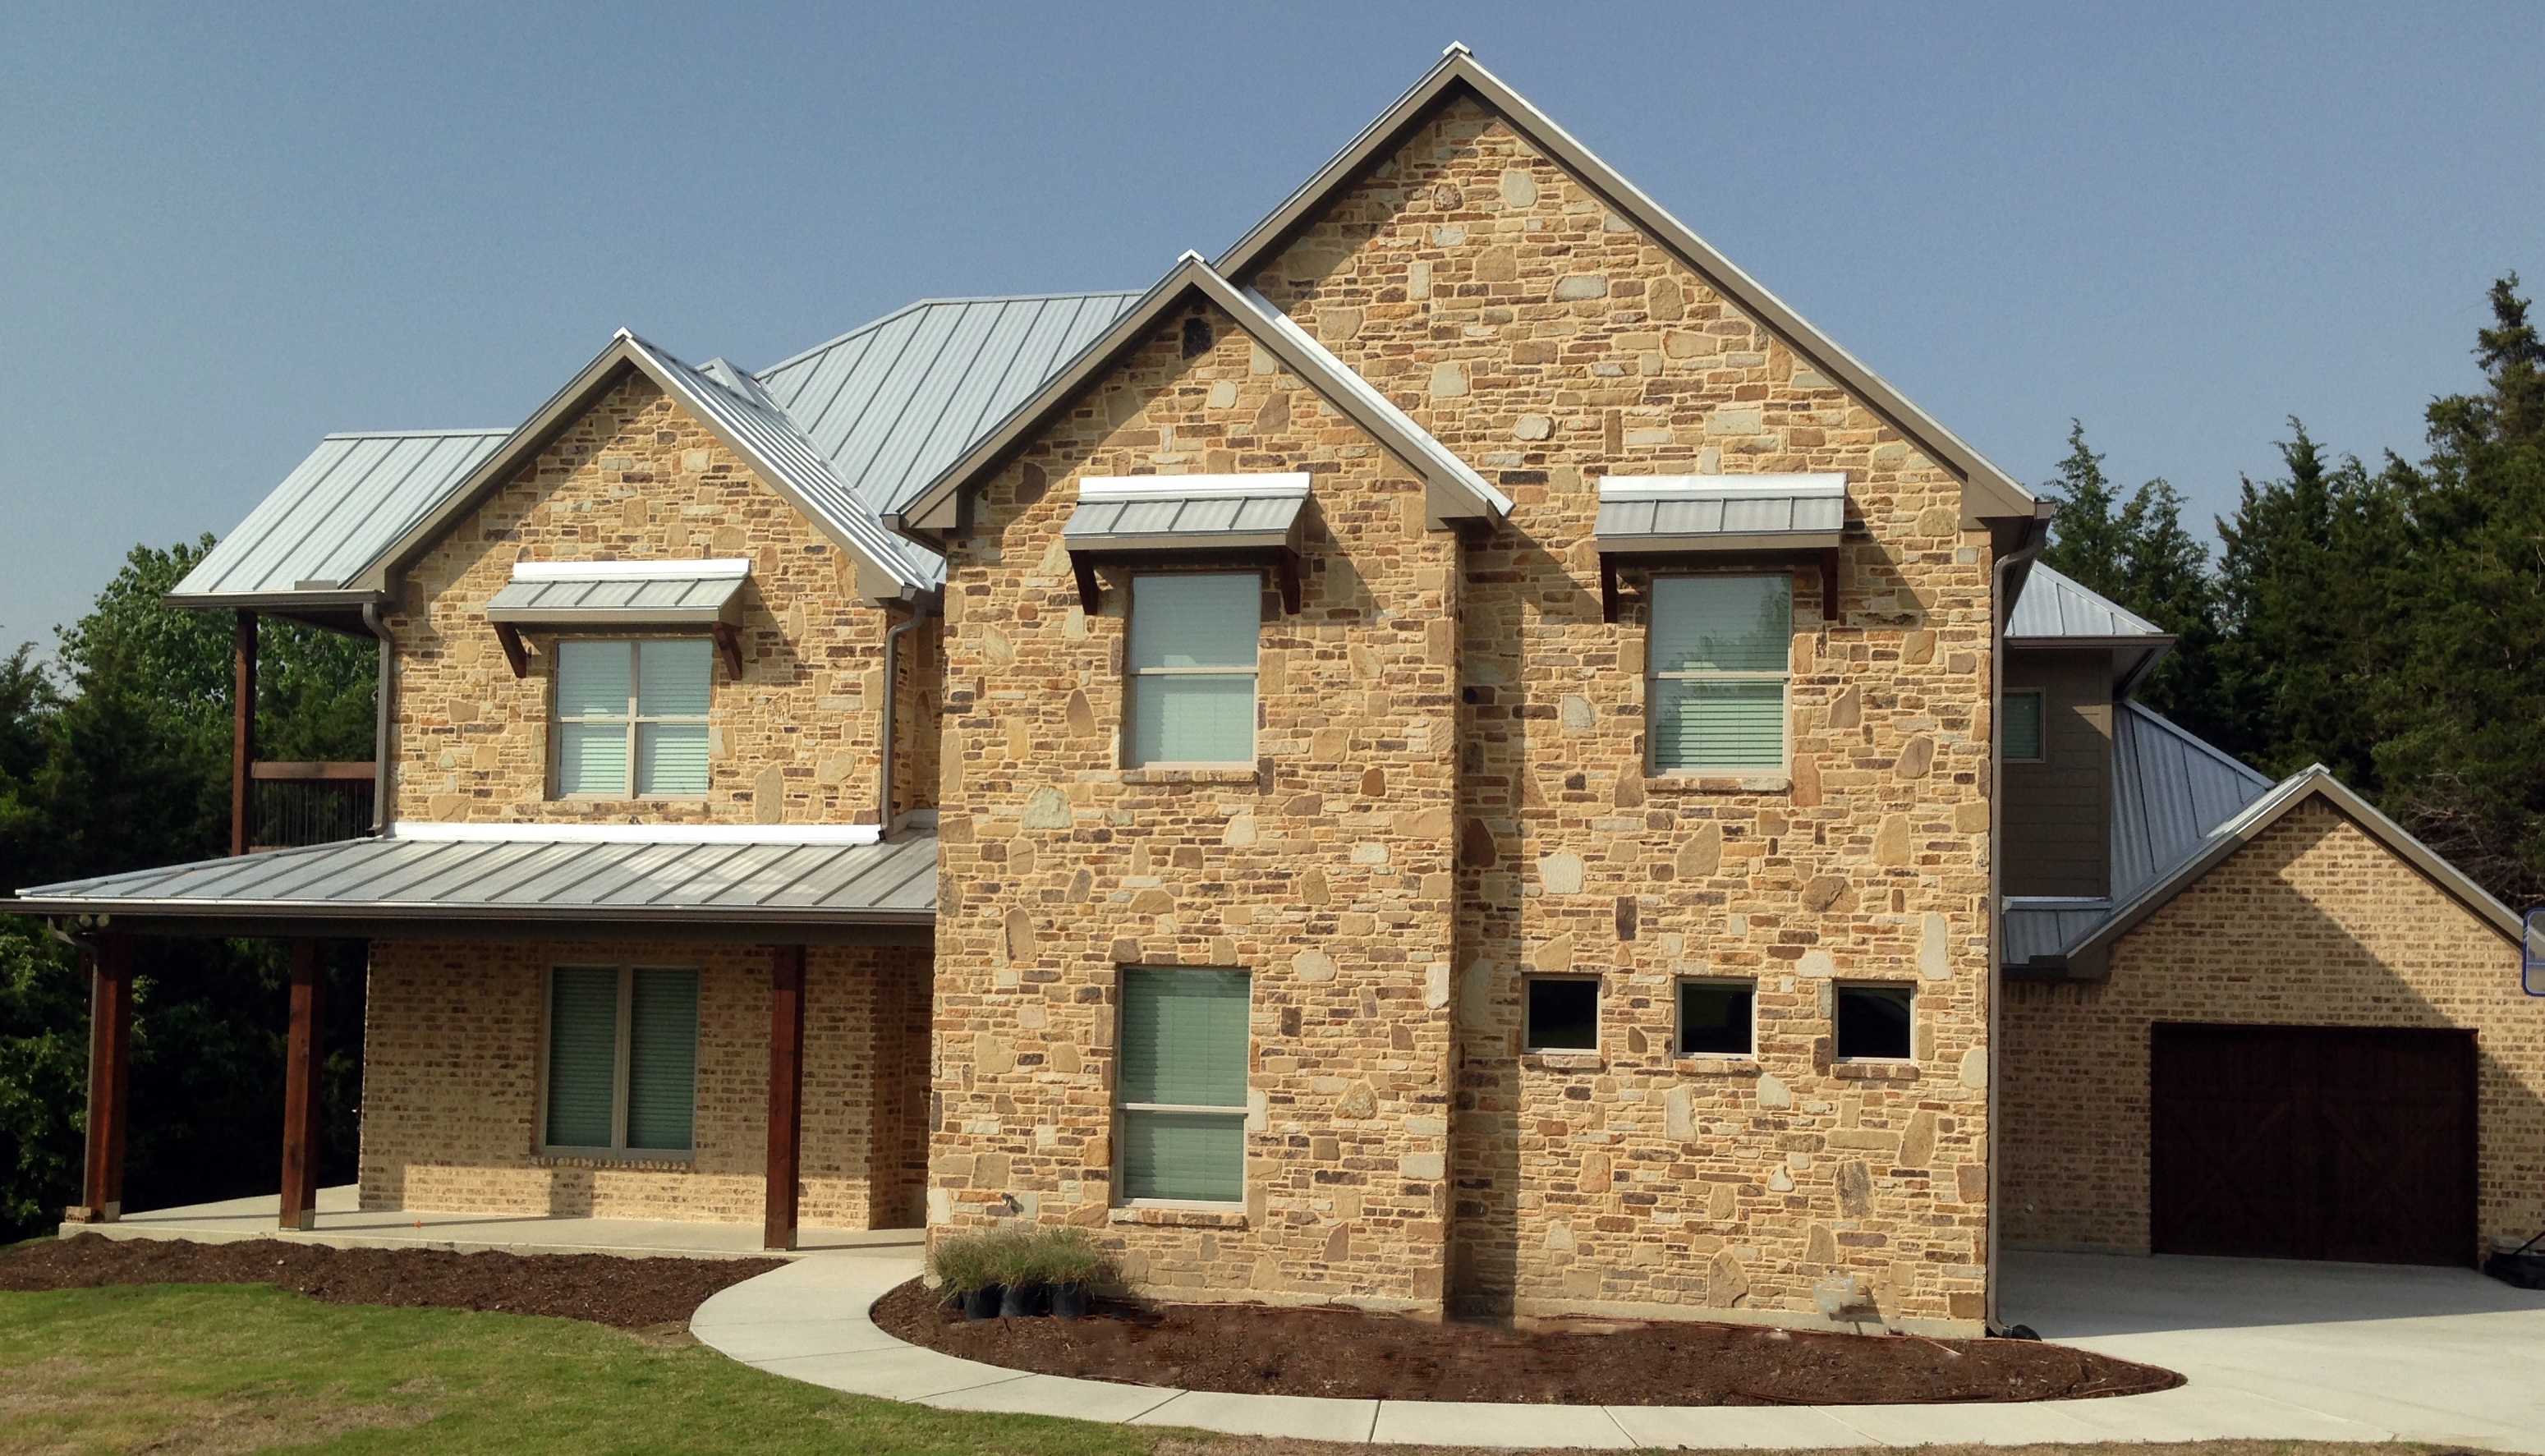 Cedar Ridge Rustic Blend Legends Stone Natural Stone